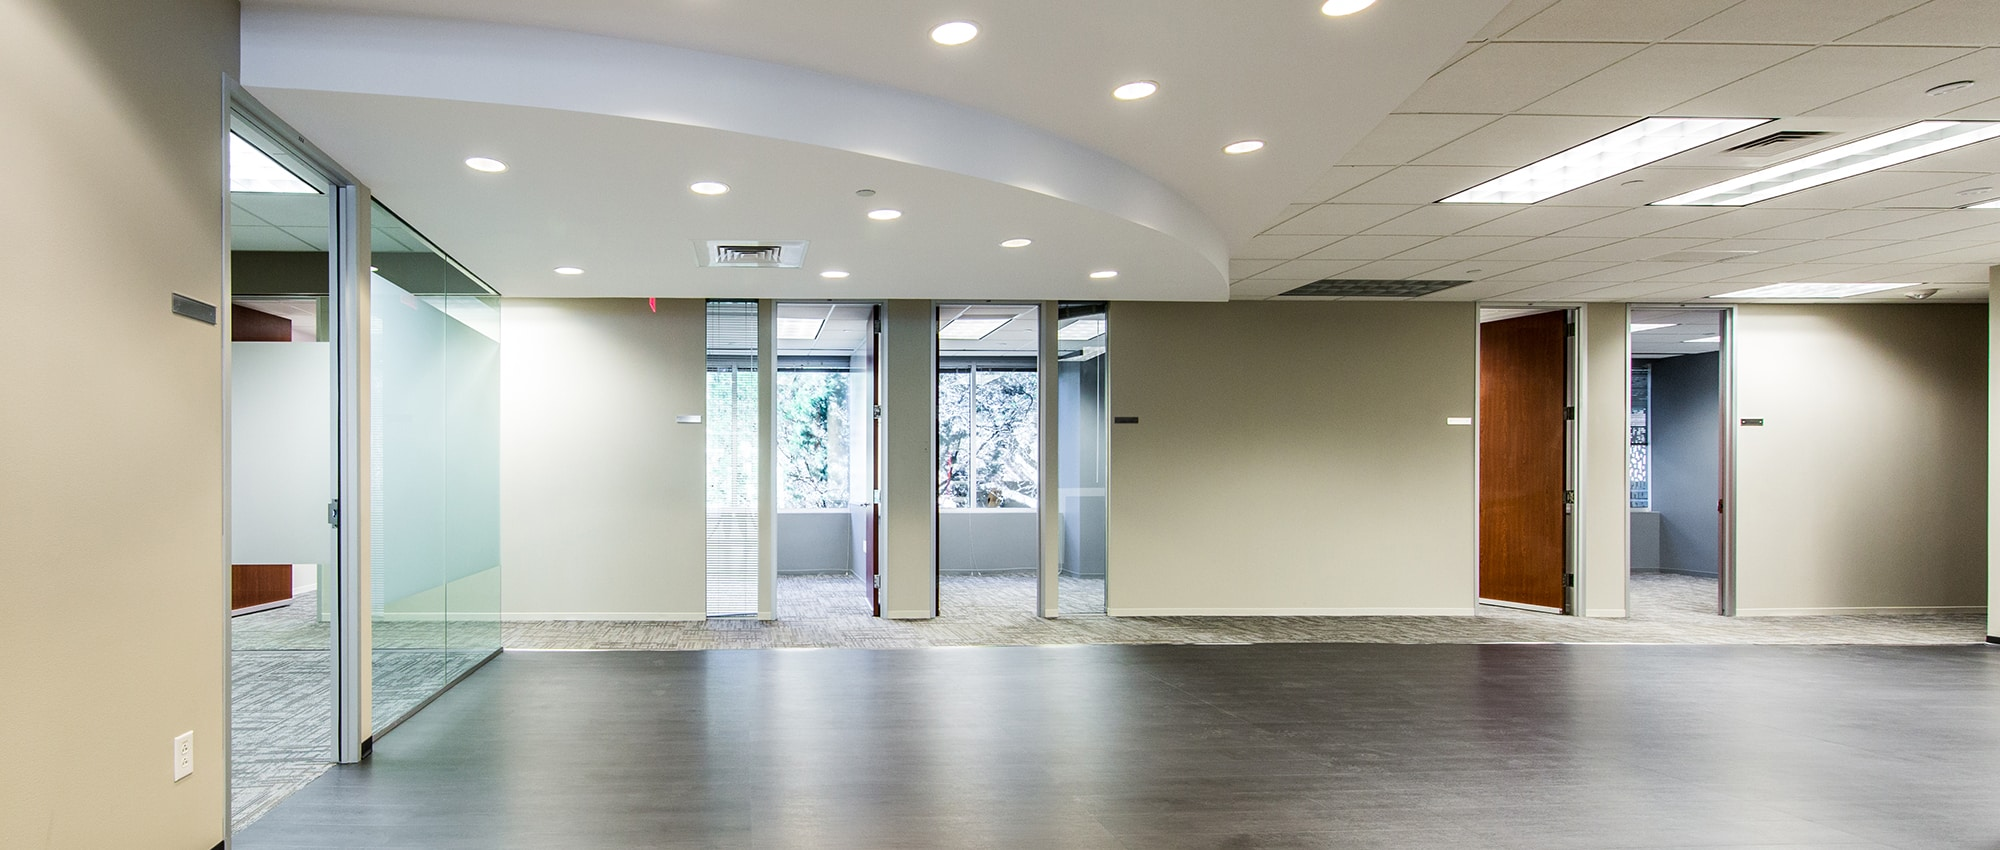 2nd Generation Office Space at Lakewood Center | Office Build Out